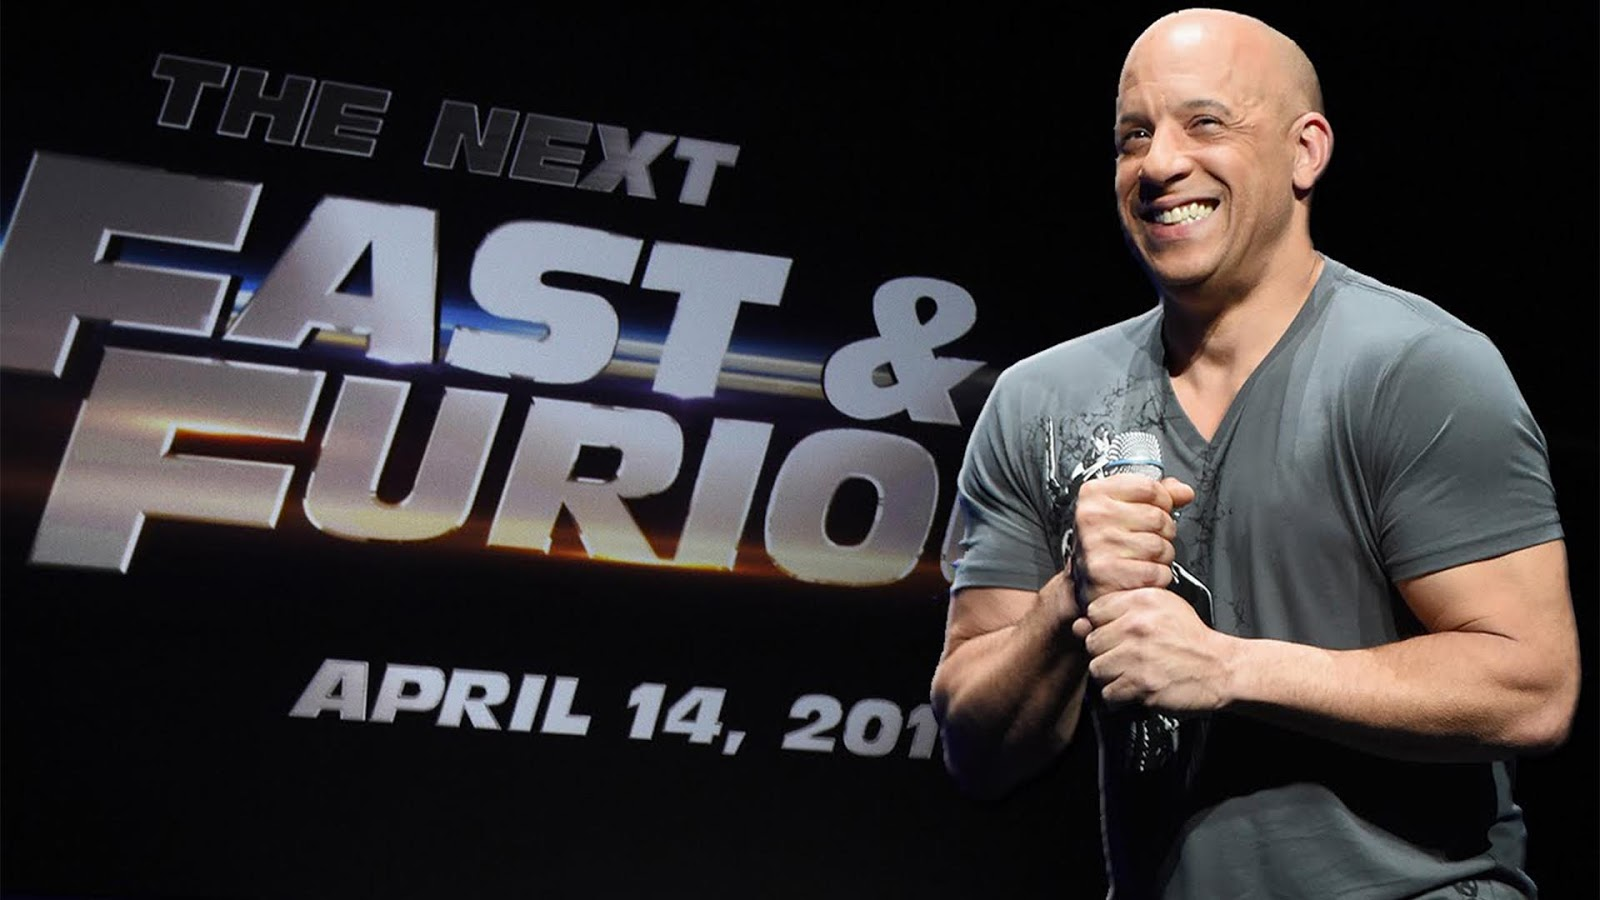 Hd wallpapers fast and furious 8 hd wallpapers - Furious 8 wallpaper ...